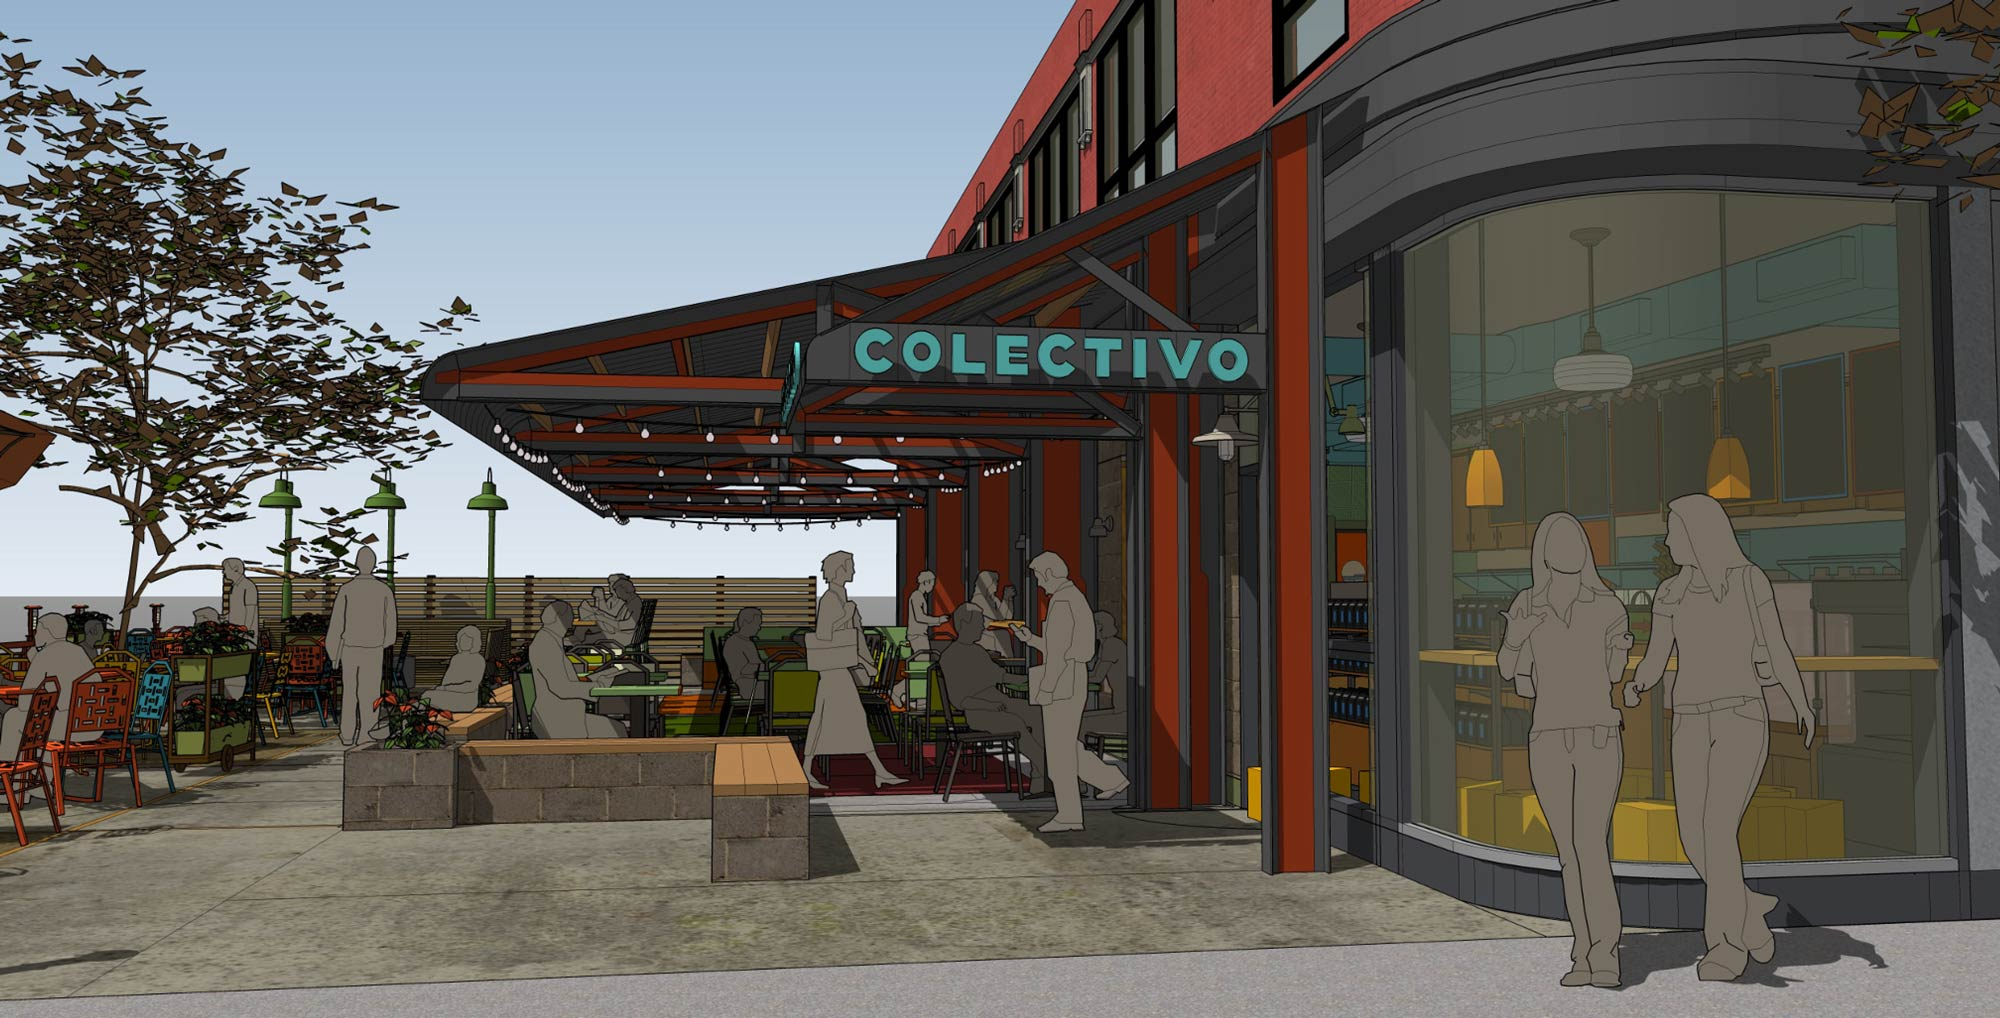 Renderings of the upcoming Lincoln Park Chicago Cafe, provided by Colectivo.